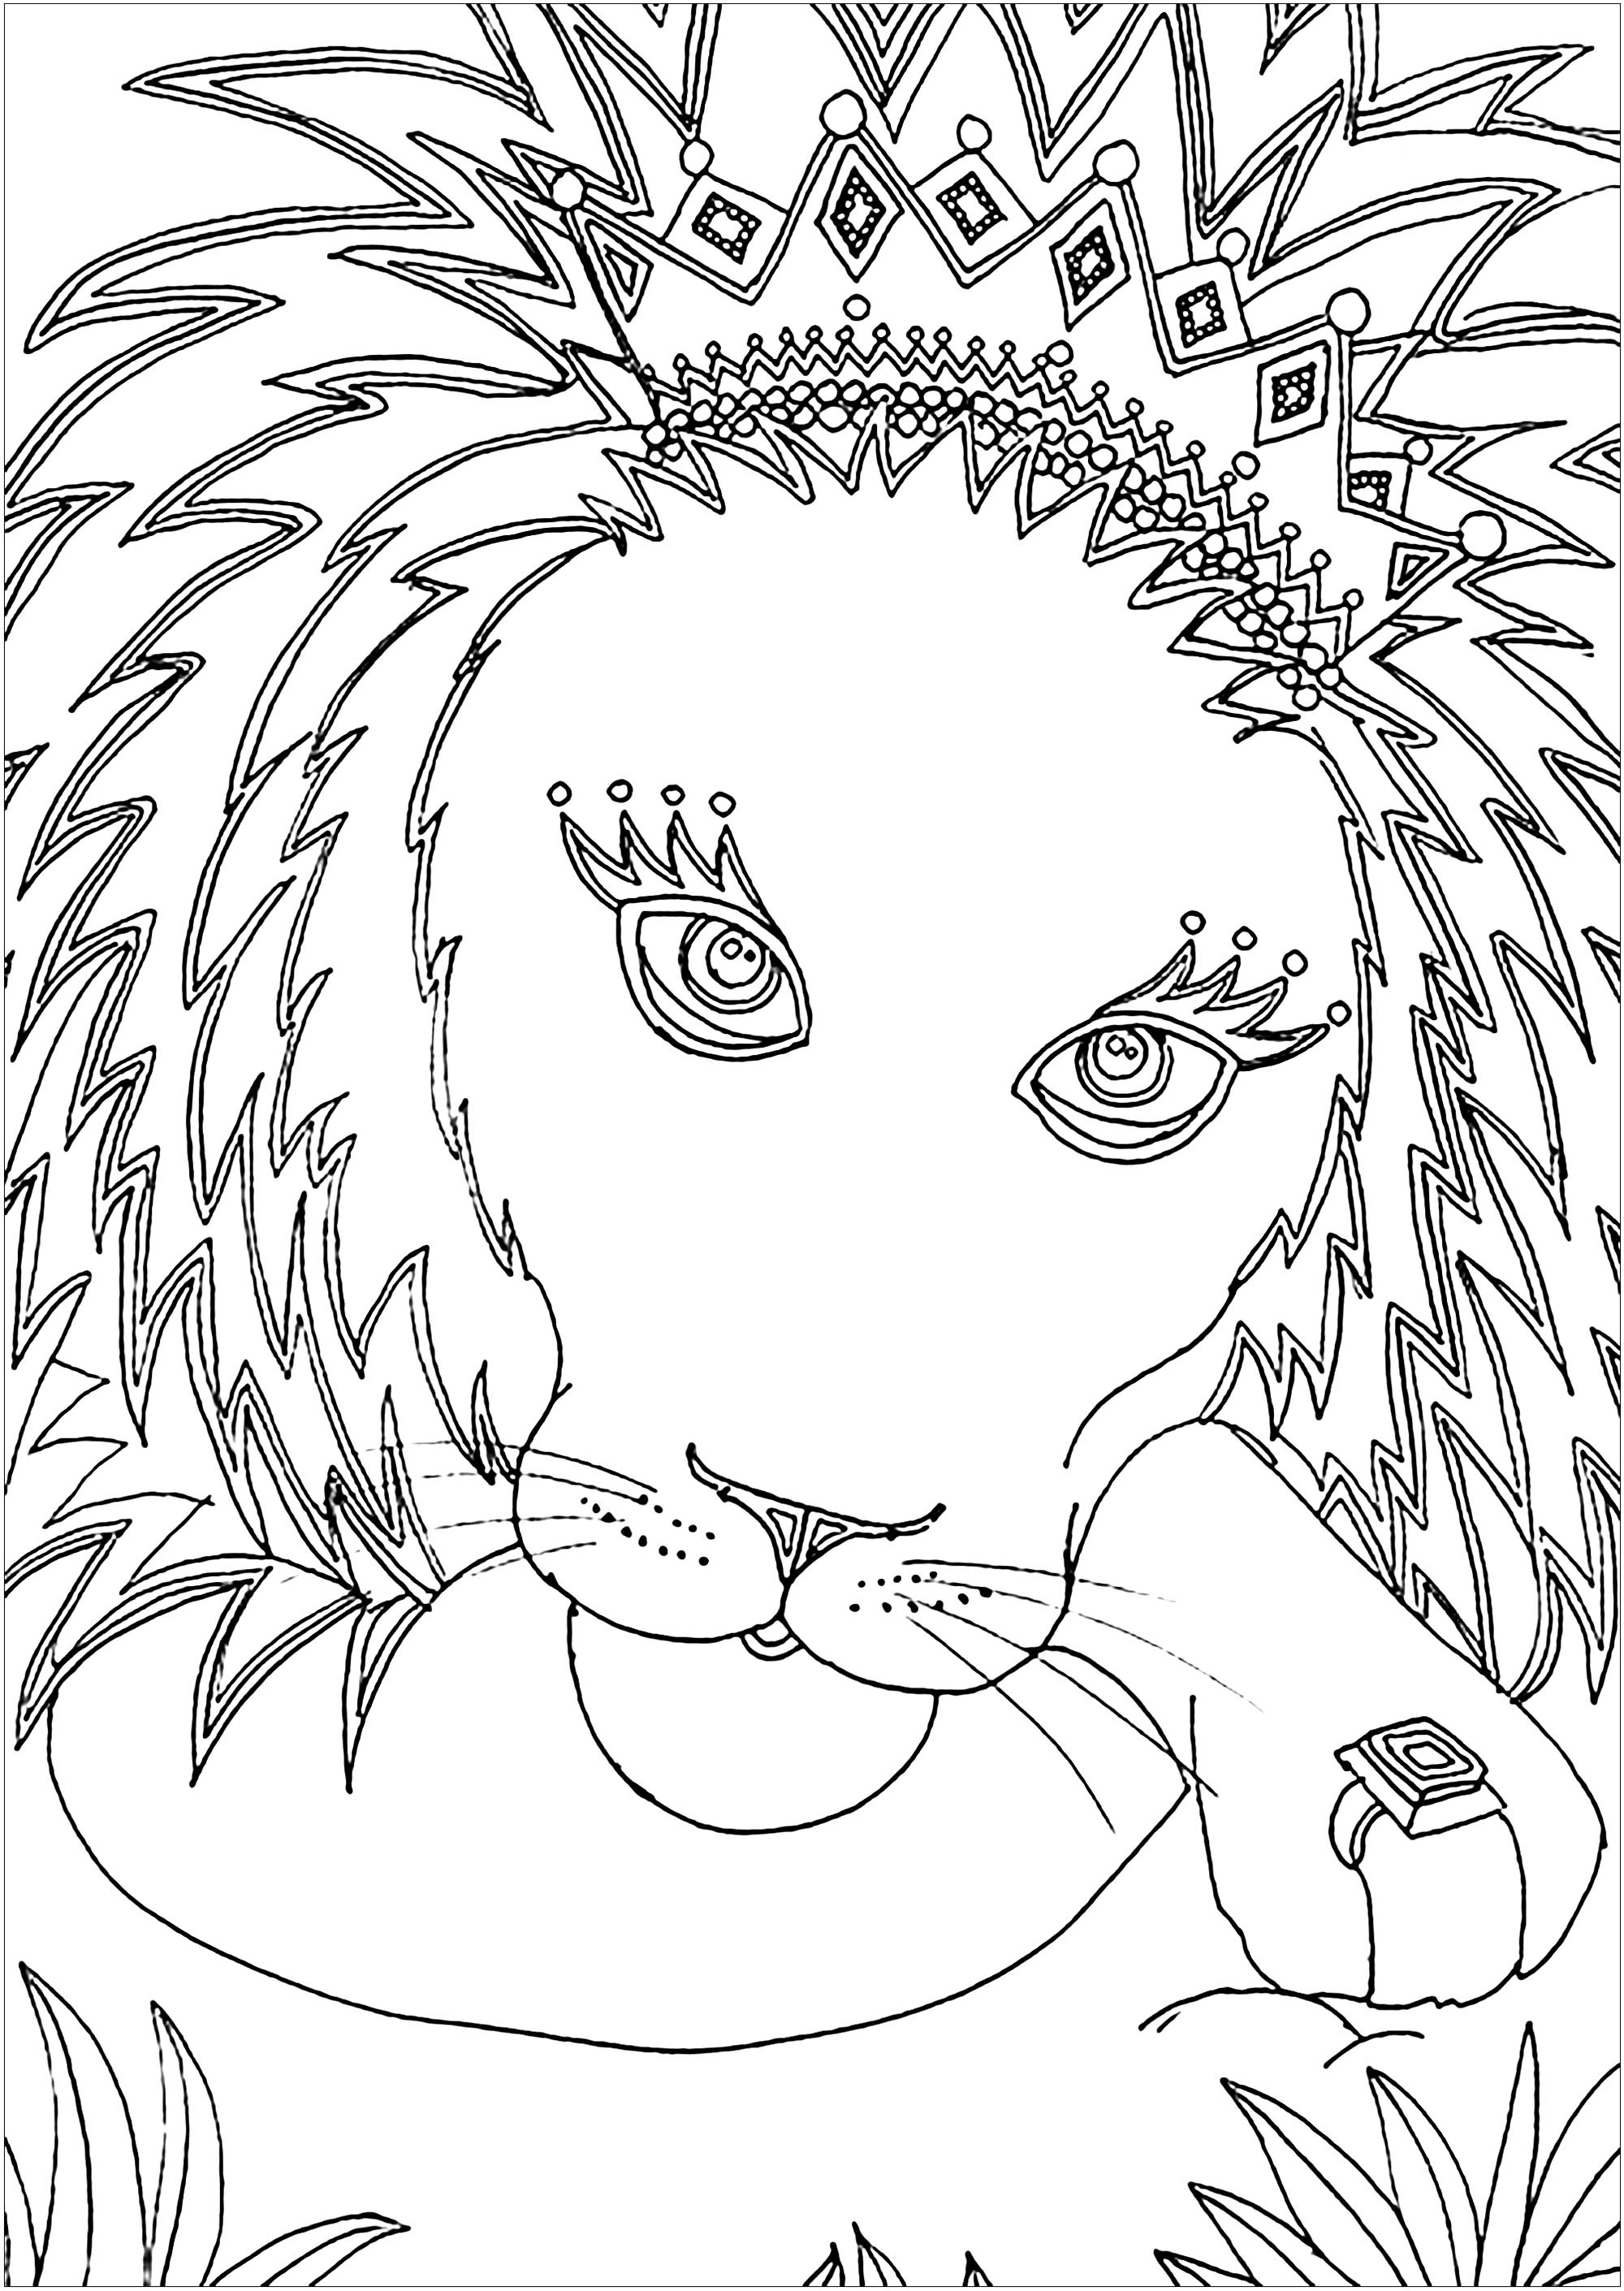 coloring pages of lion lion to color for children lion kids coloring pages lion of coloring pages